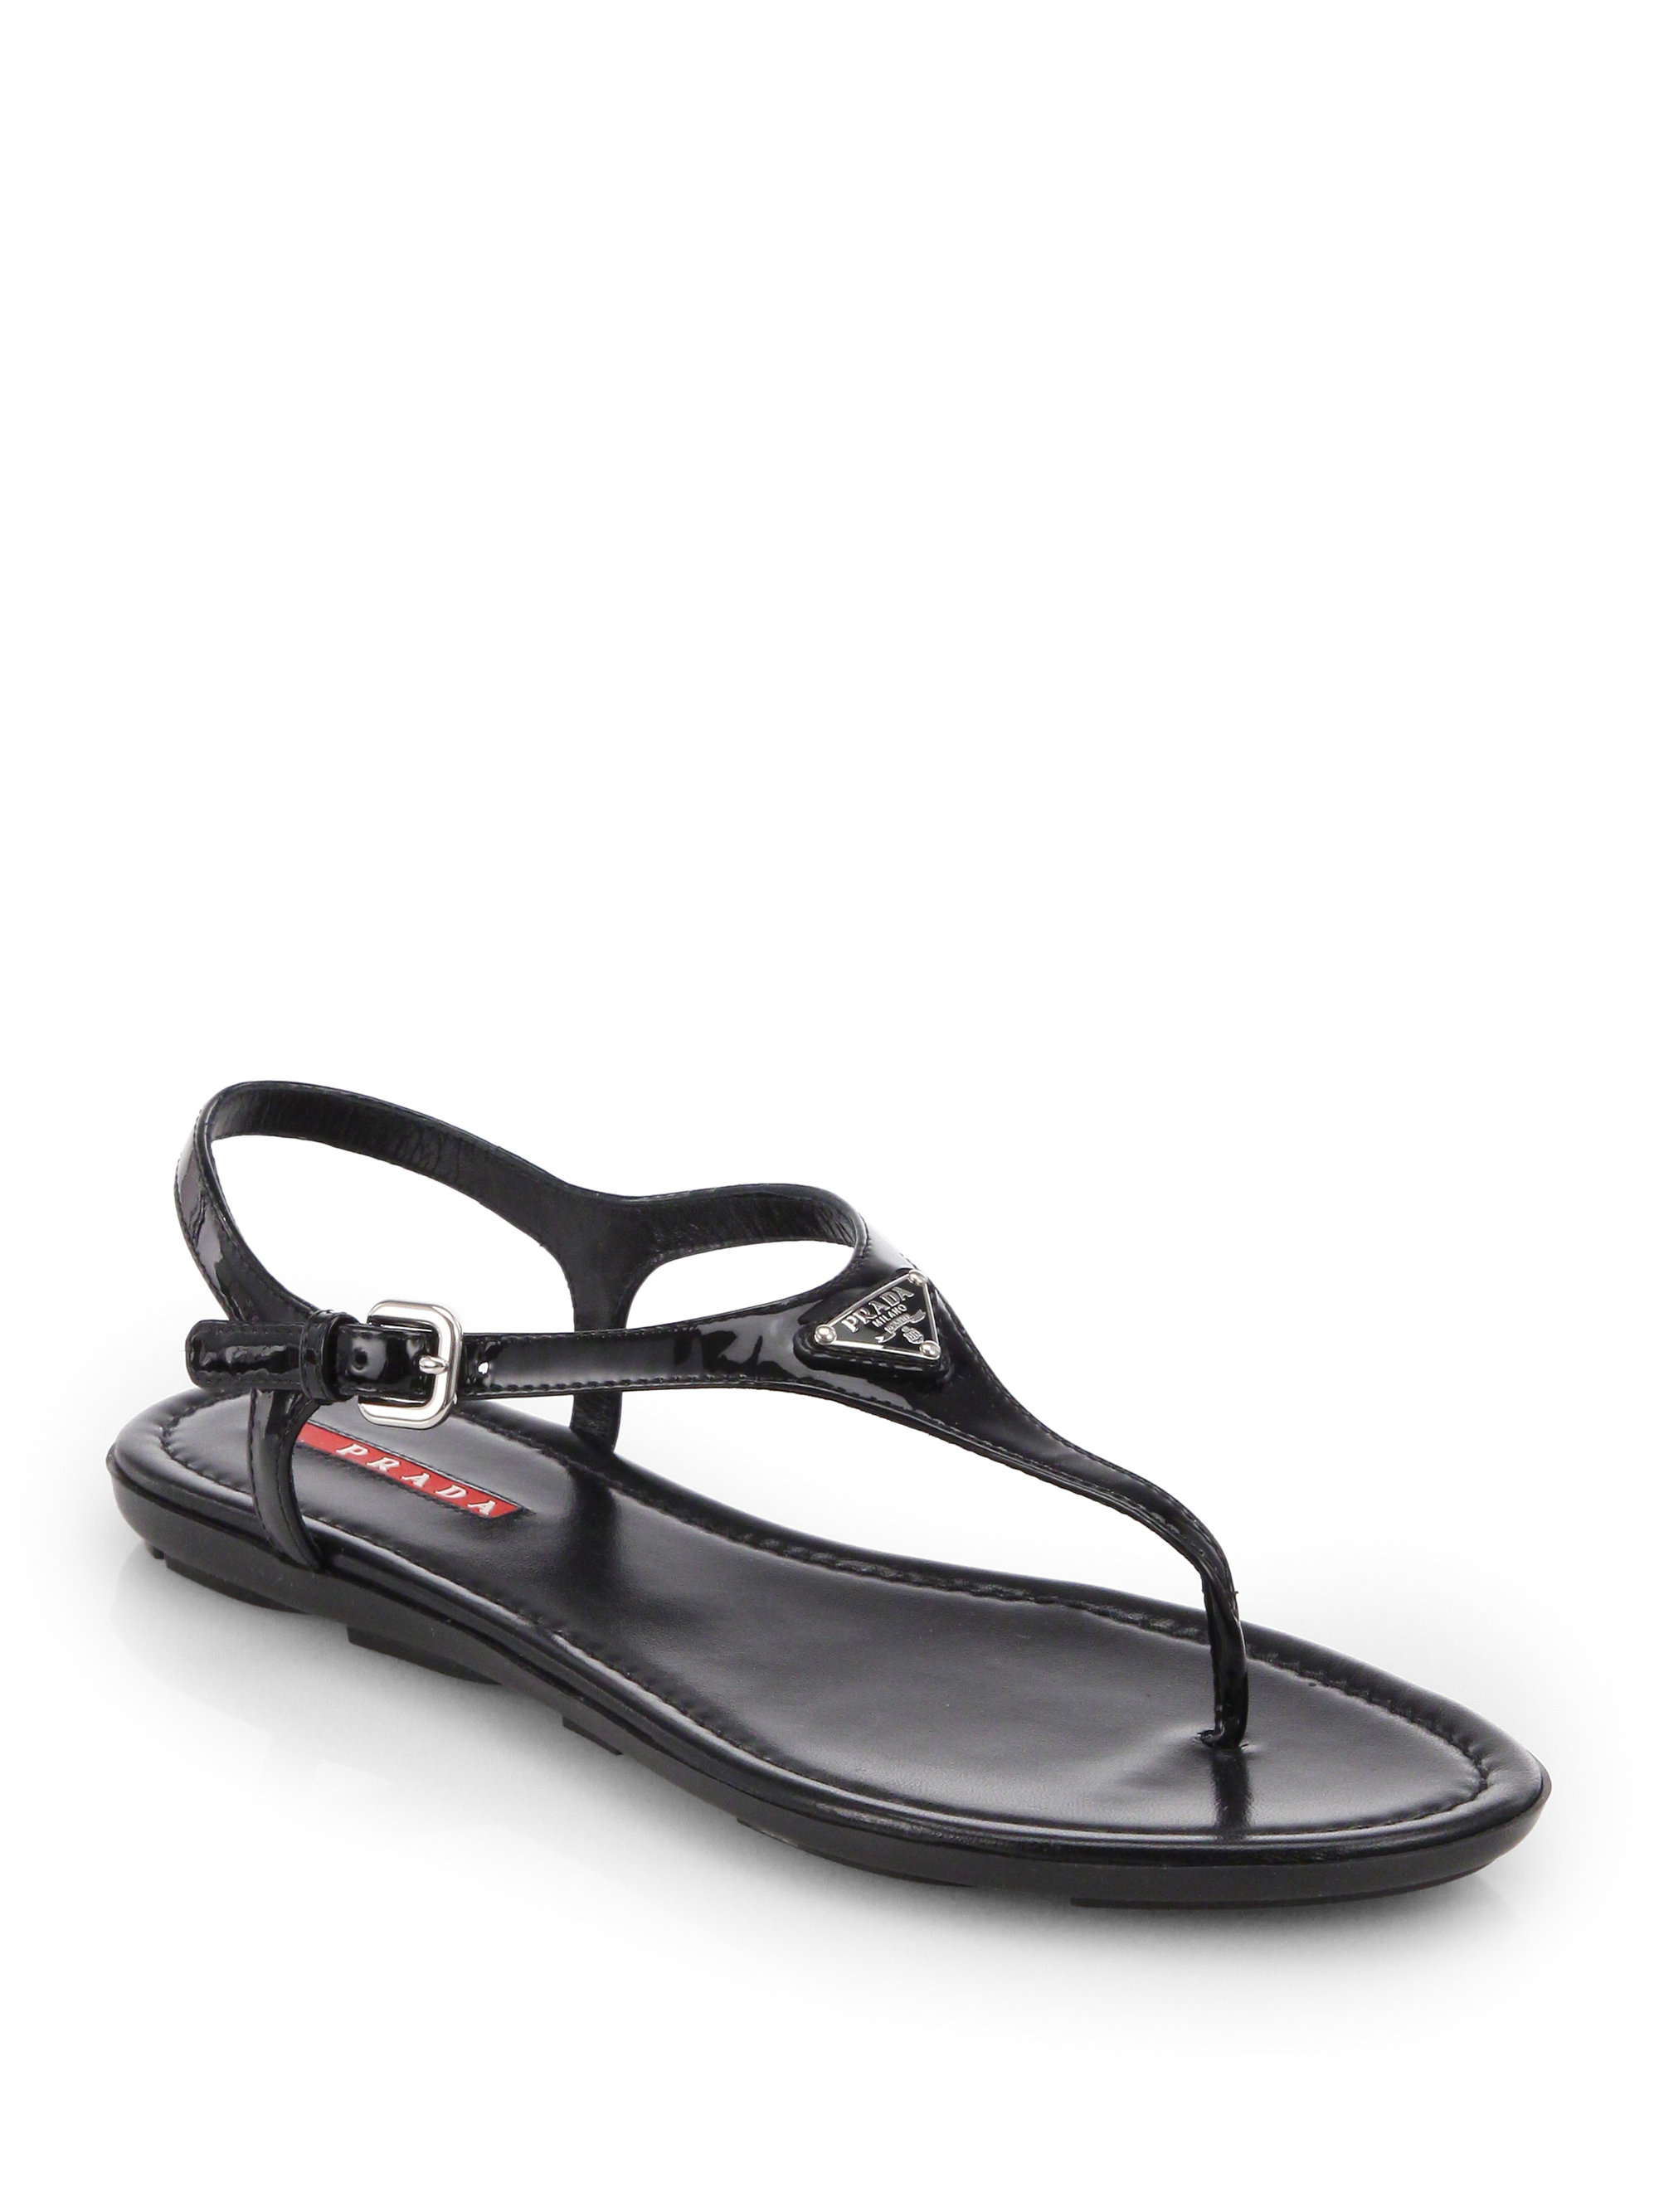 Two Strap Flat Sandals